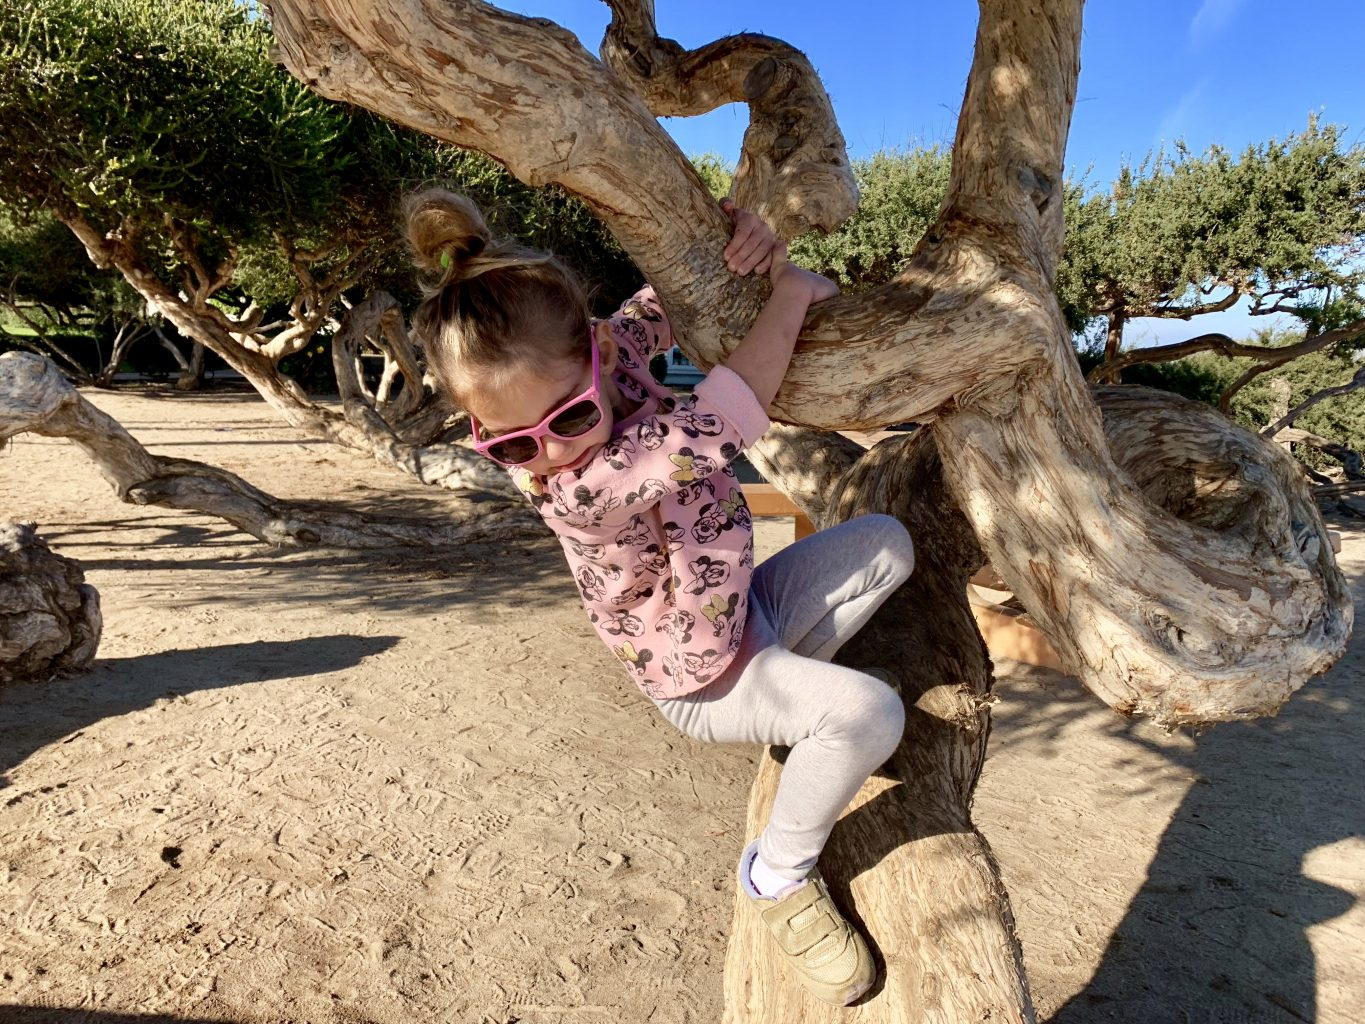 Fun things to do in La Jolla with kids: tree climbing at La Jolla Shores Beach